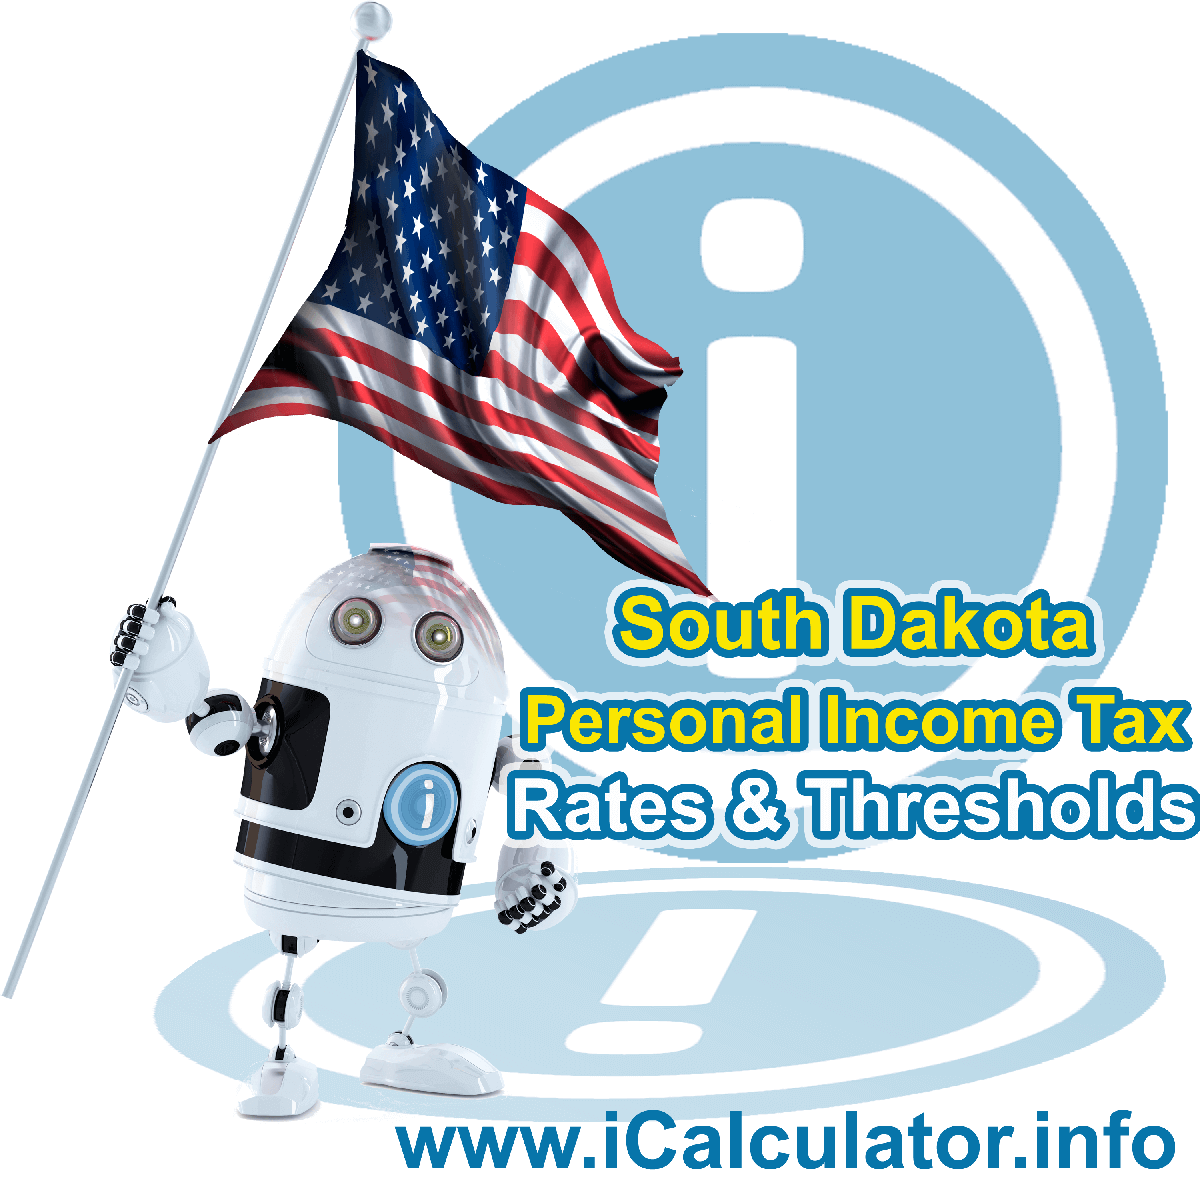 South Dakota State Tax Tables 2018. This image displays details of the South Dakota State Tax Tables for the 2018 tax return year which is provided in support of the 2018 US Tax Calculator